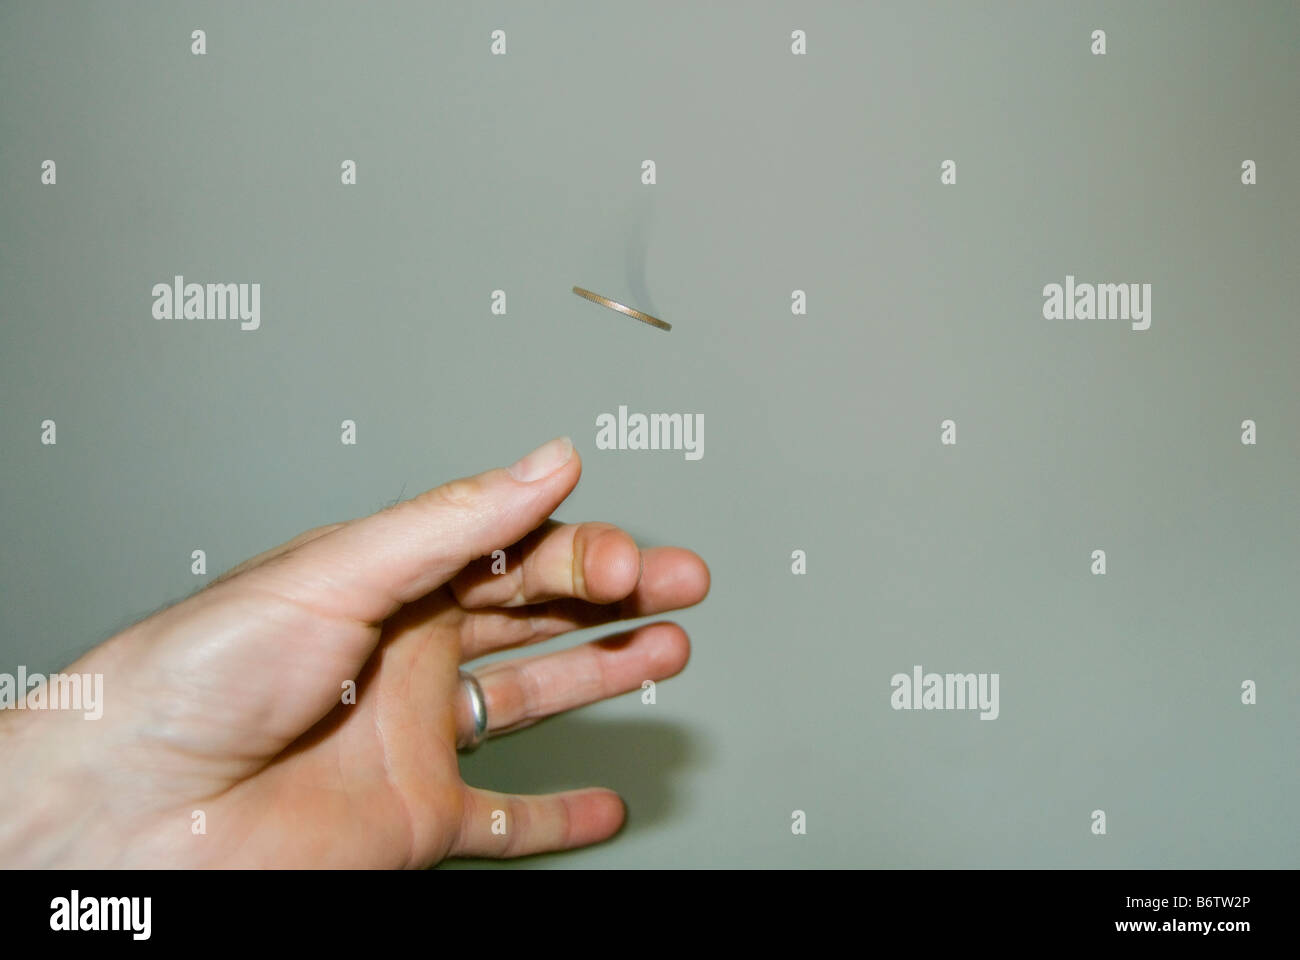 A coin flipped caught in mid air - Stock Image